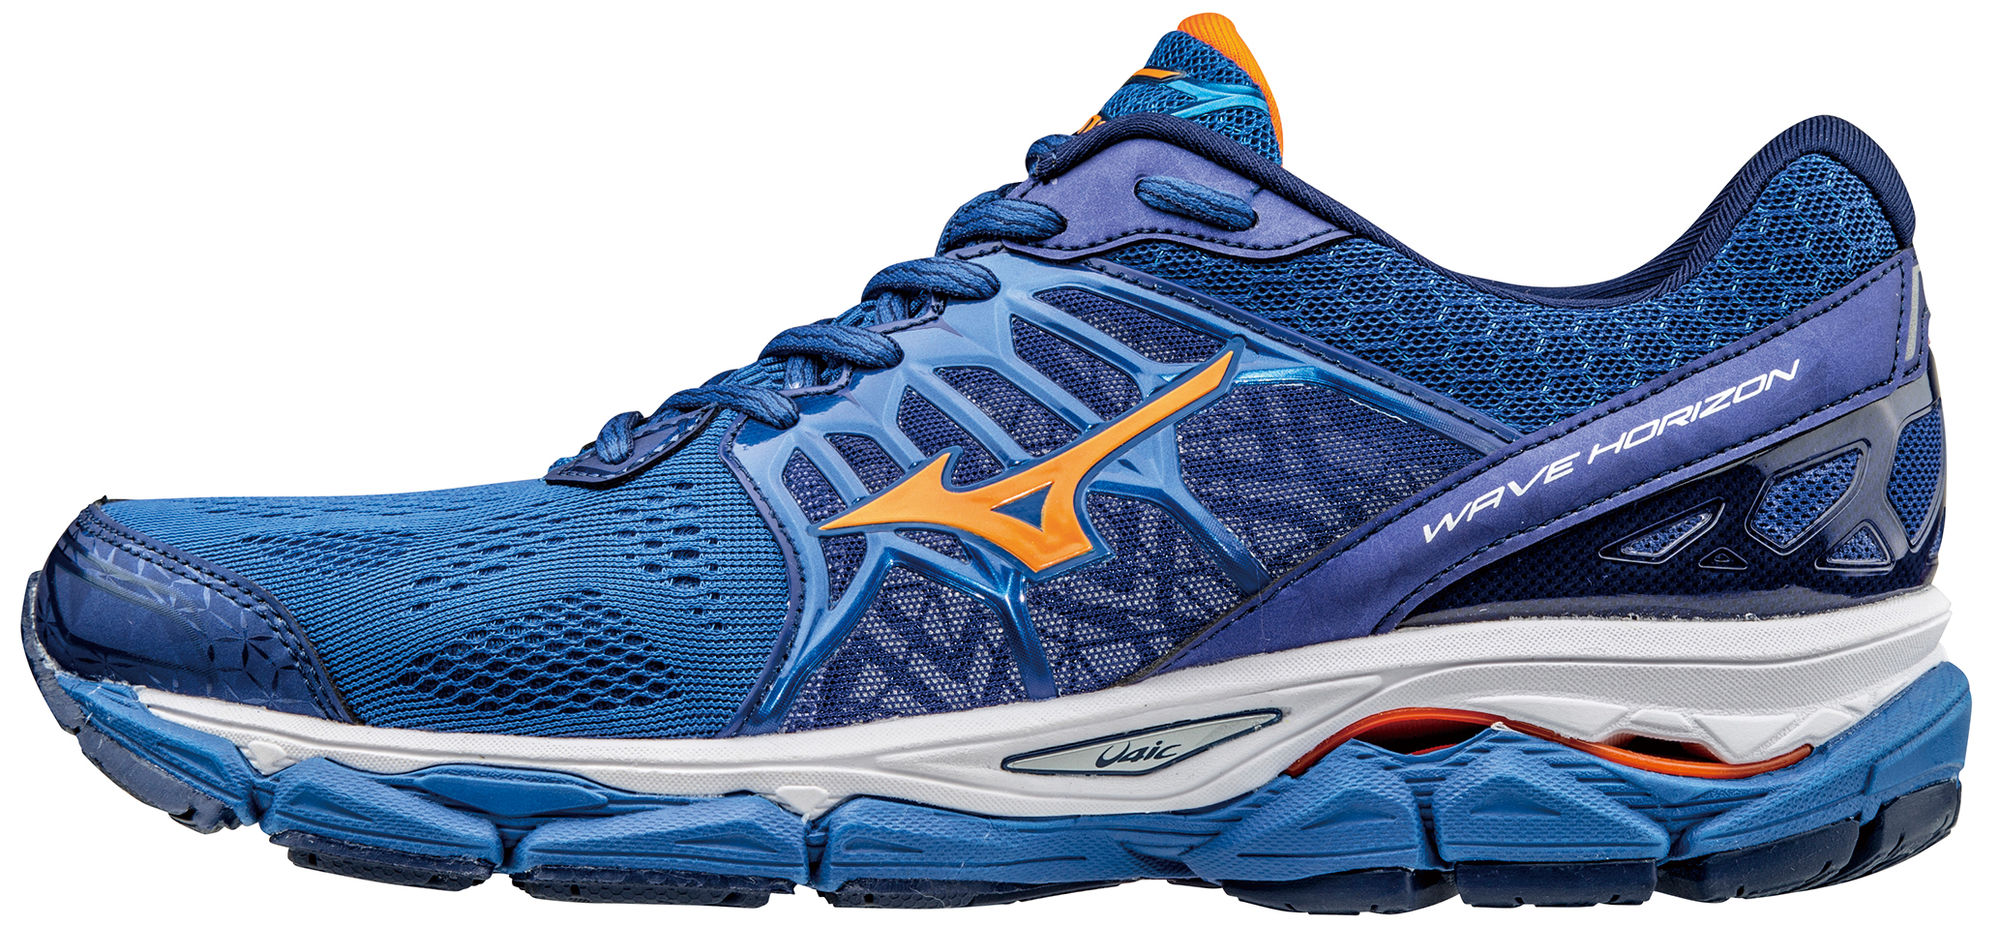 Mizuno Wave Horizon in Blau